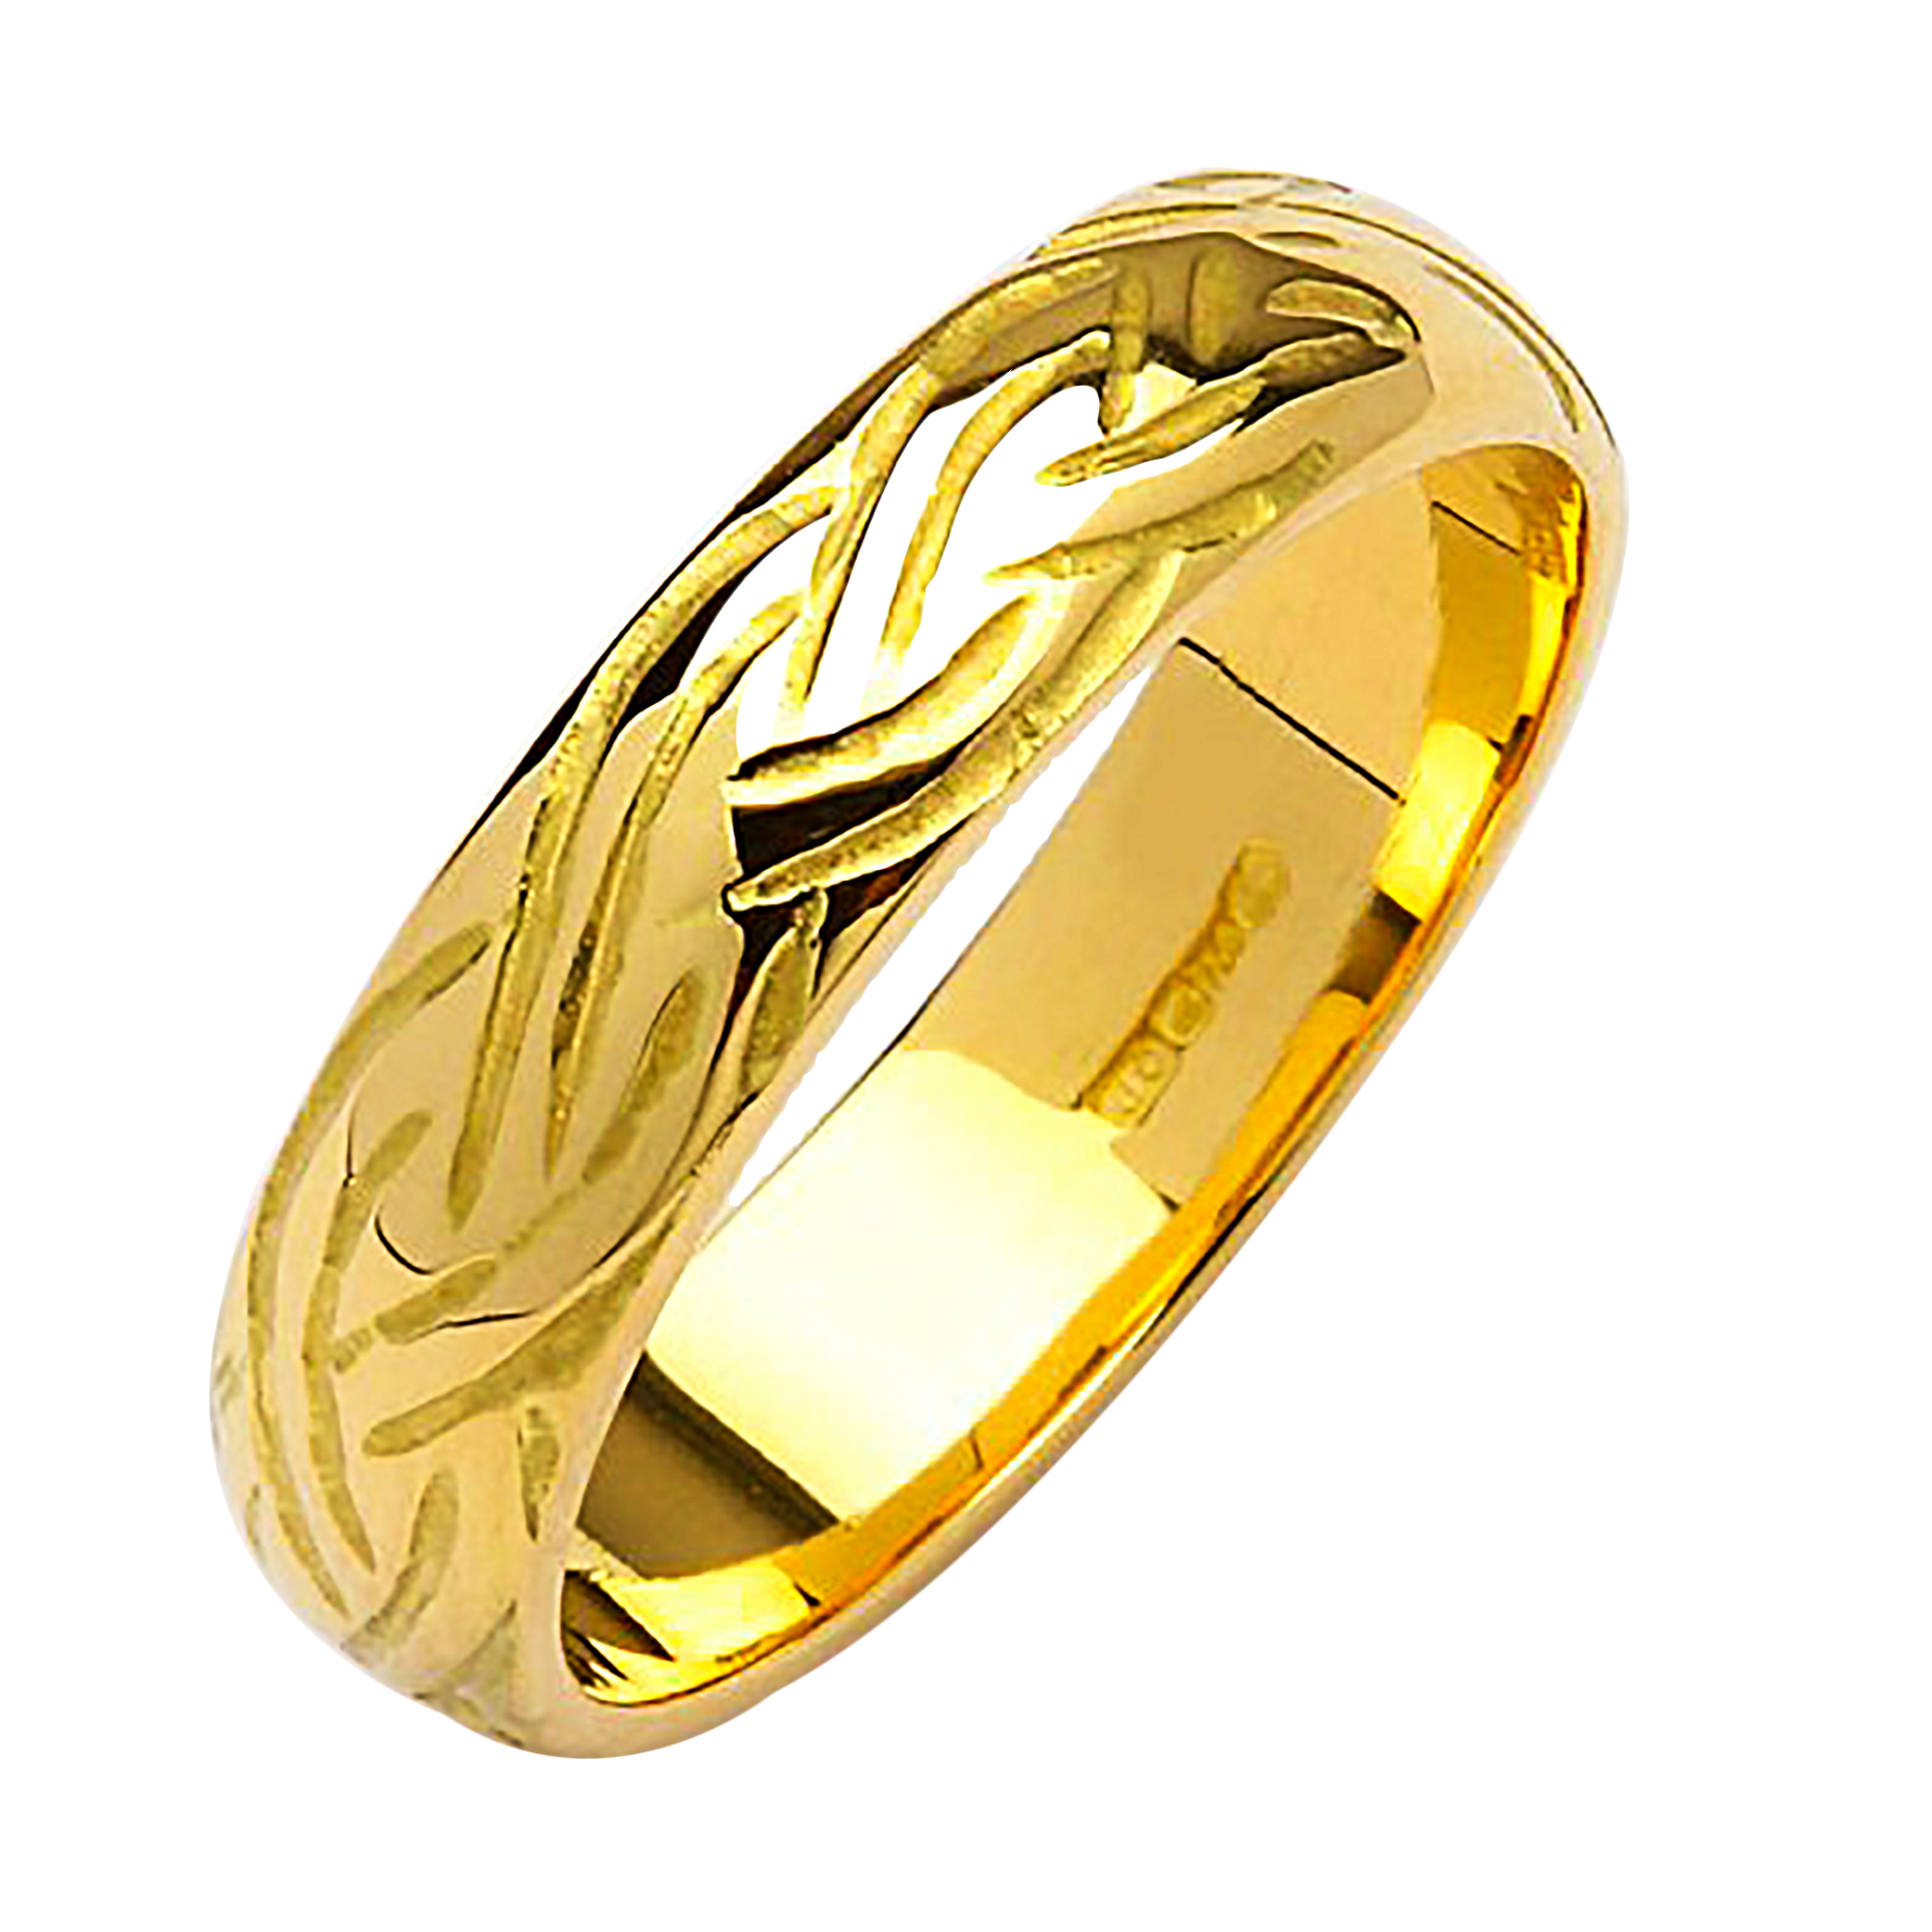 ring ru at dome zantine rings lalaounis motif and gold